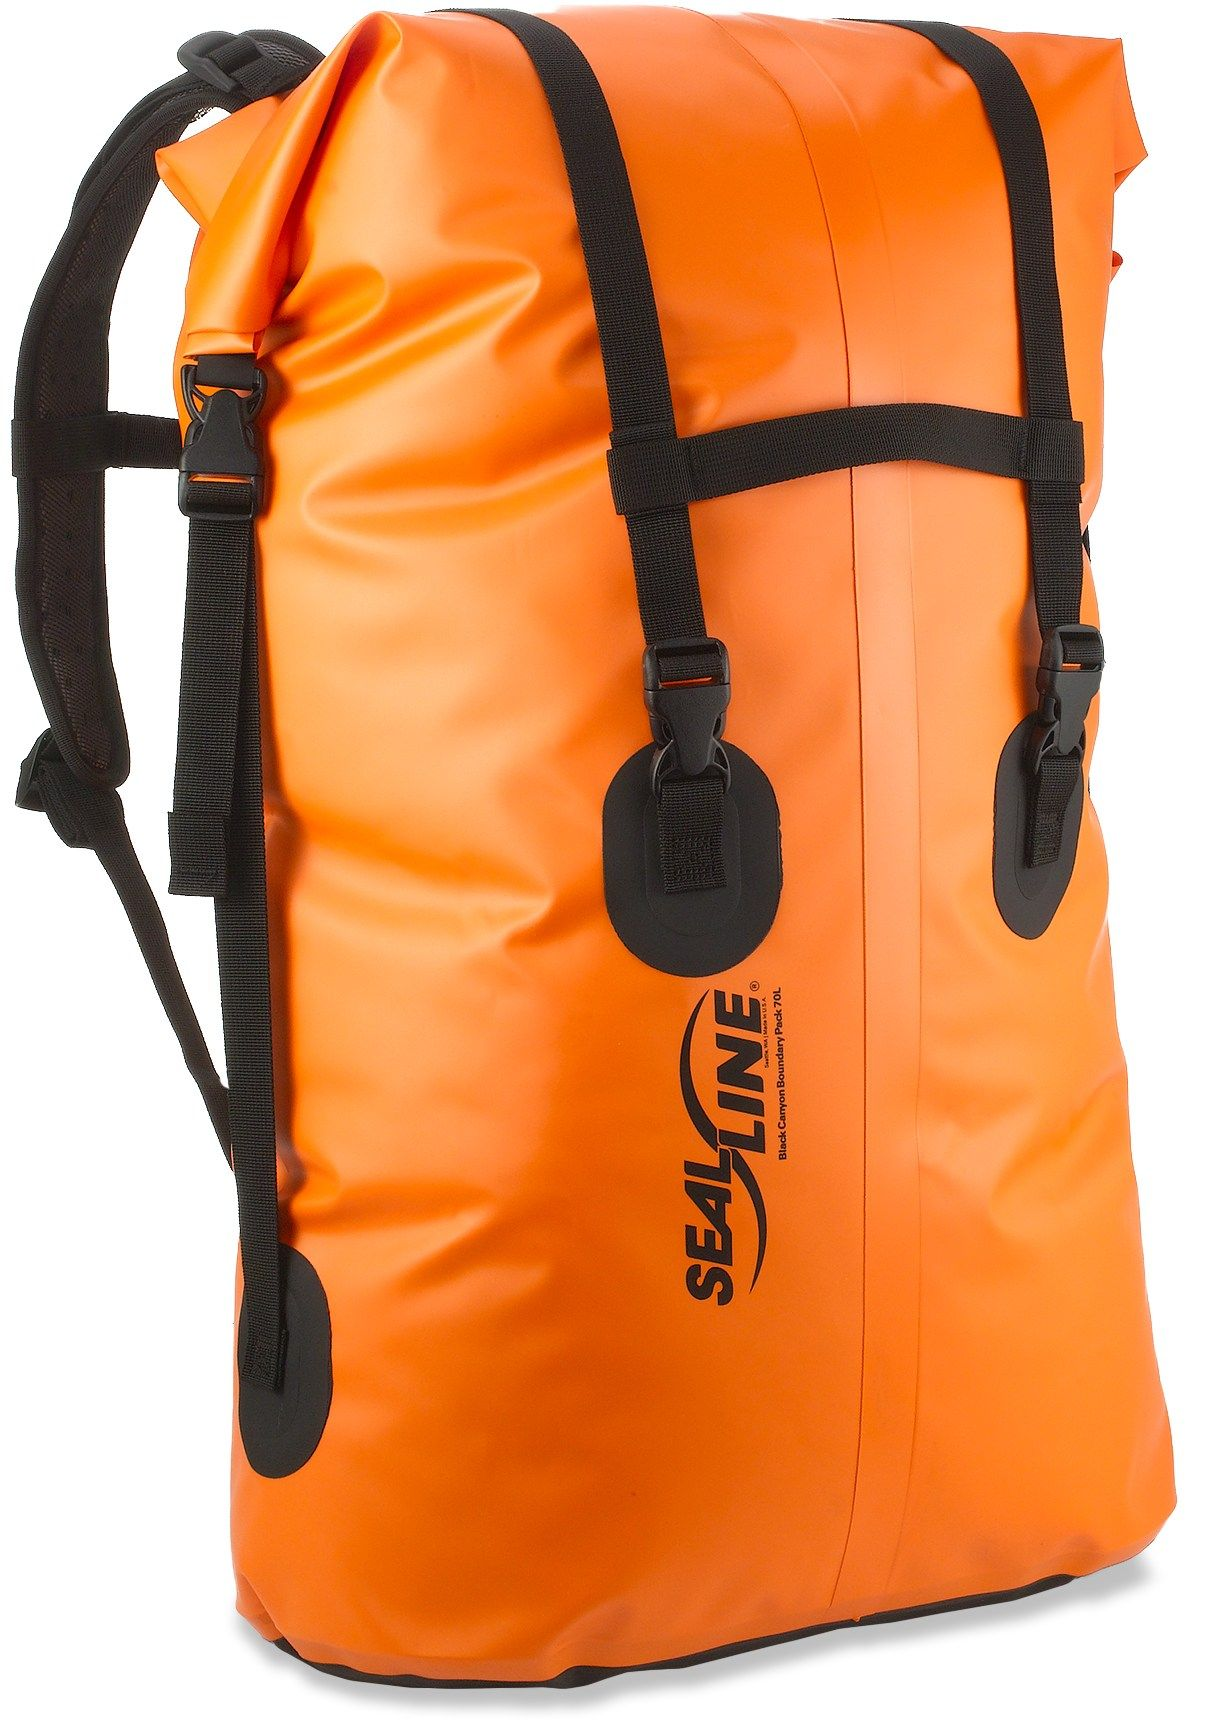 SealLine Black Canyon Boundary Dry Pack - 70 Liters REI